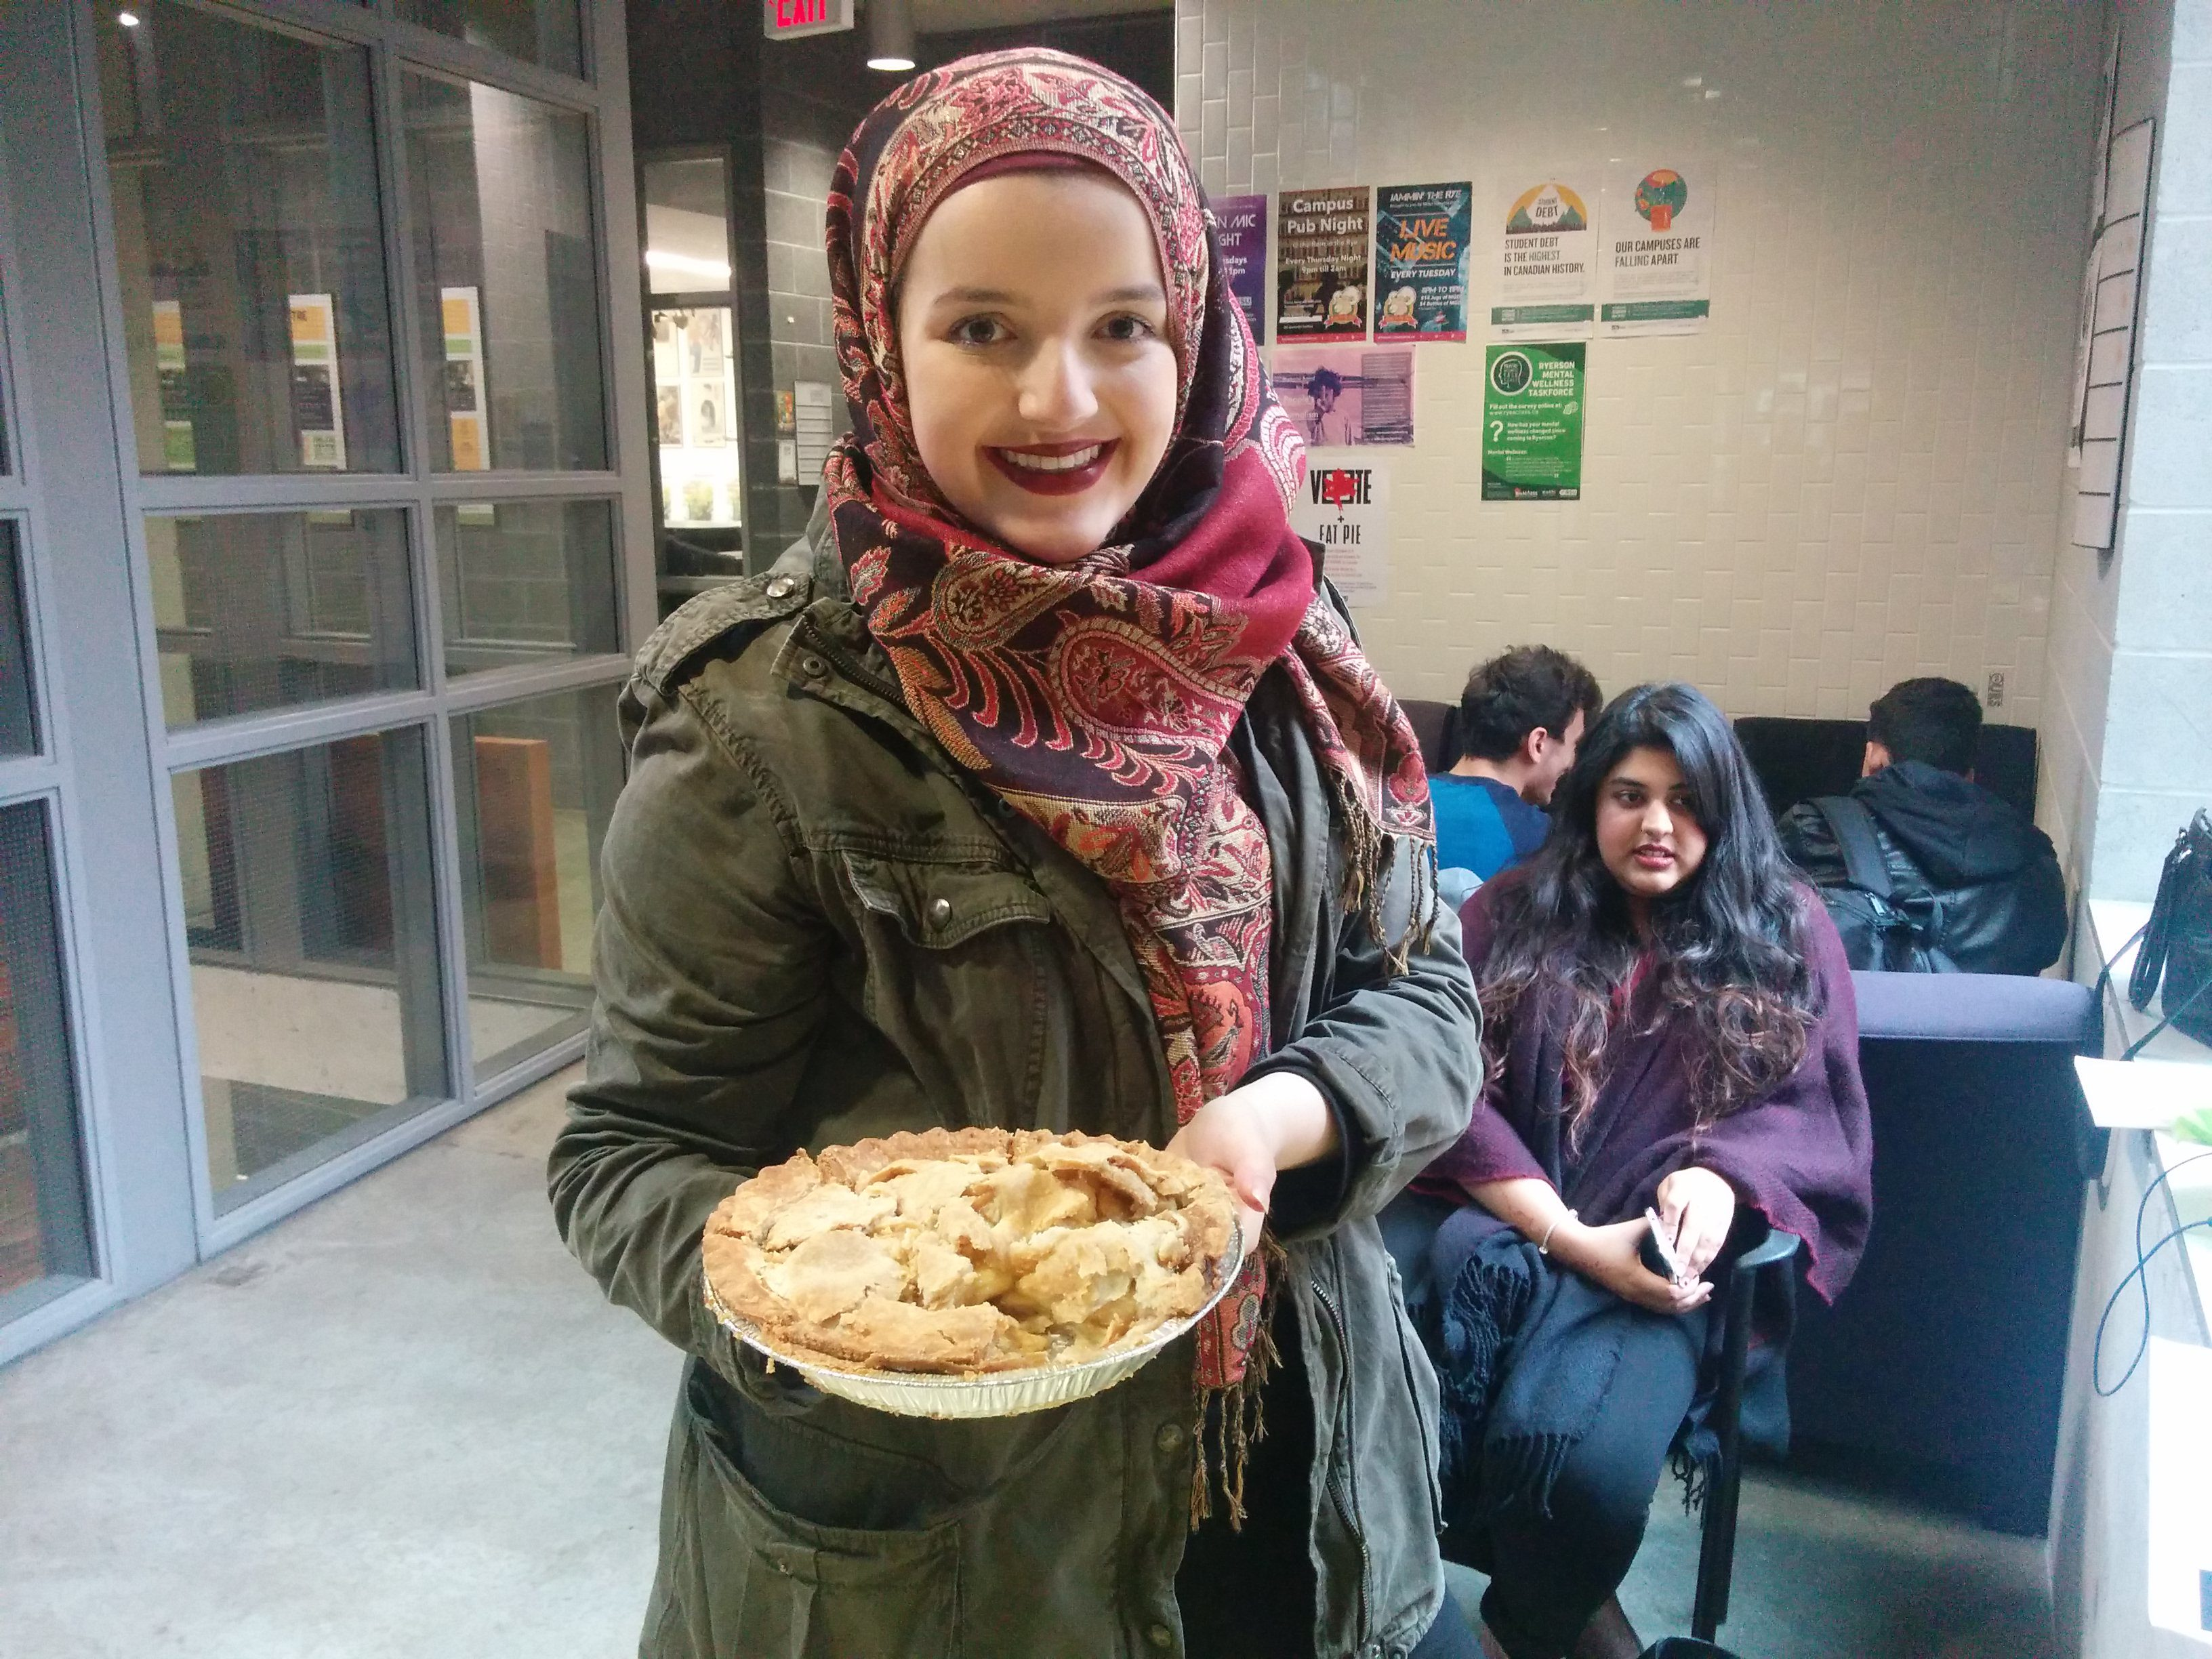 Mariam Nouser holds up a pie just across from the polls in the SCC (Arthur White/Ryersonian Staff).